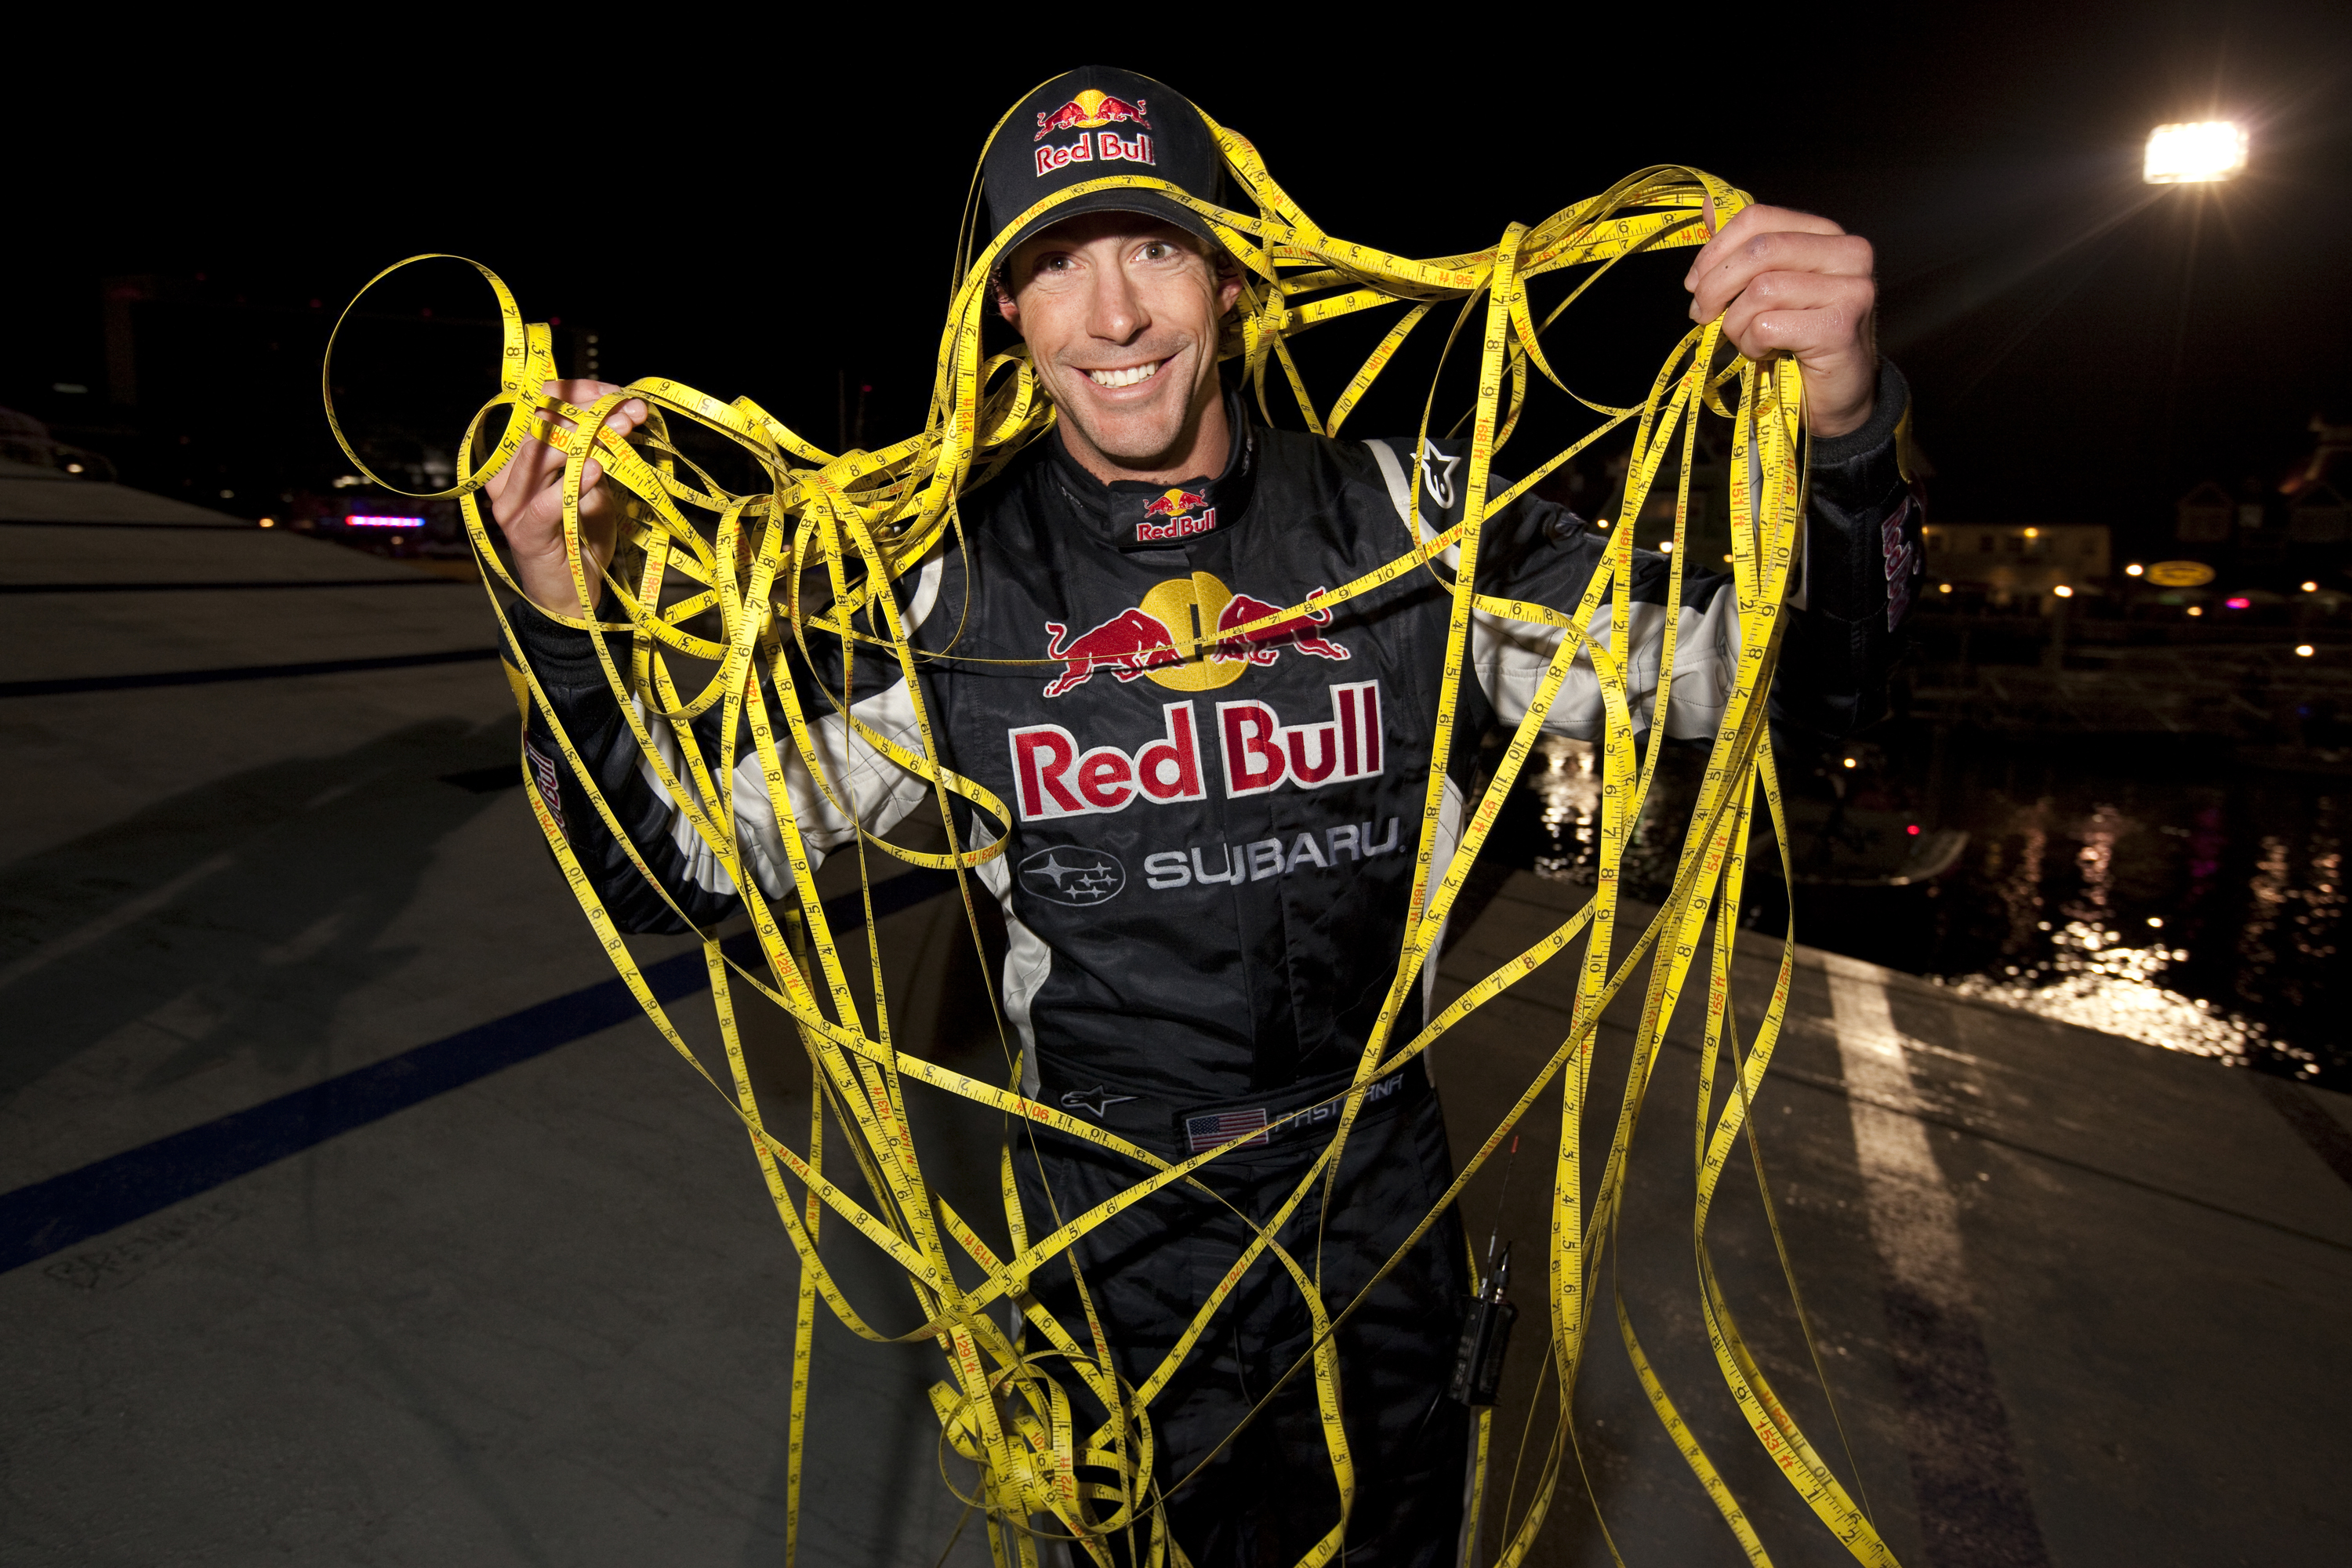 LONG BEACH, CA - DECEMBER 31: In this handout image provided by Red Bull Photofiles, Travis Pastrana poses after breaking the world record for the longest distance jump in a rally car on December 31, 2009 in Long Beach, California. The ramp to ramp jump w